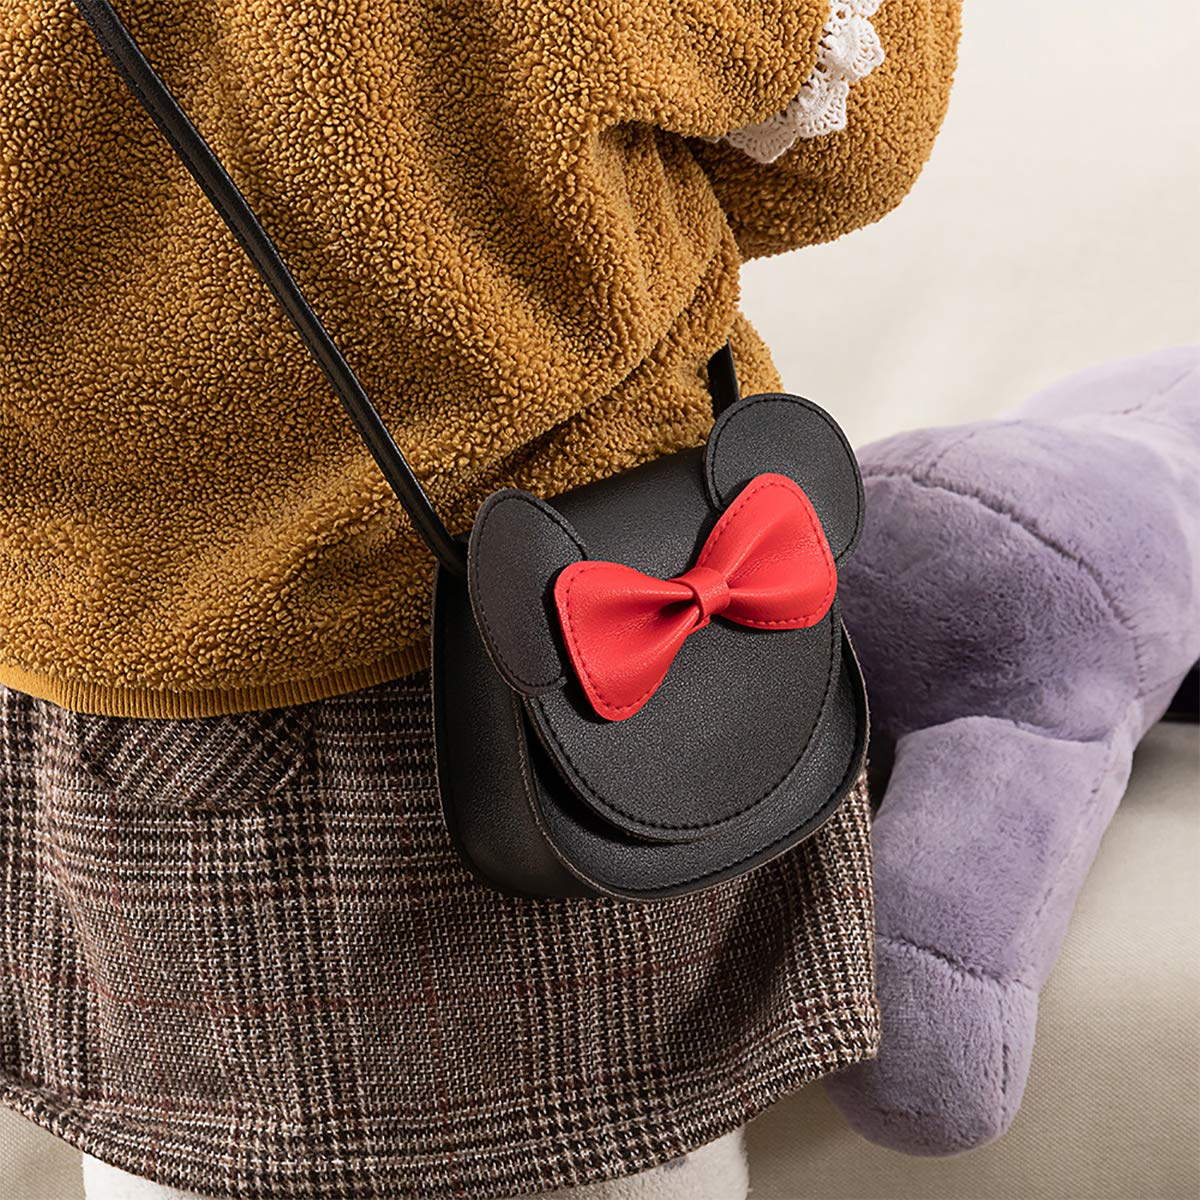 ZGMYC Kids Toddlers Bowknot Crossbody Purse Small Shoulder Bag Satchel with Cartoon Ears by ZGMYC (Image #2)